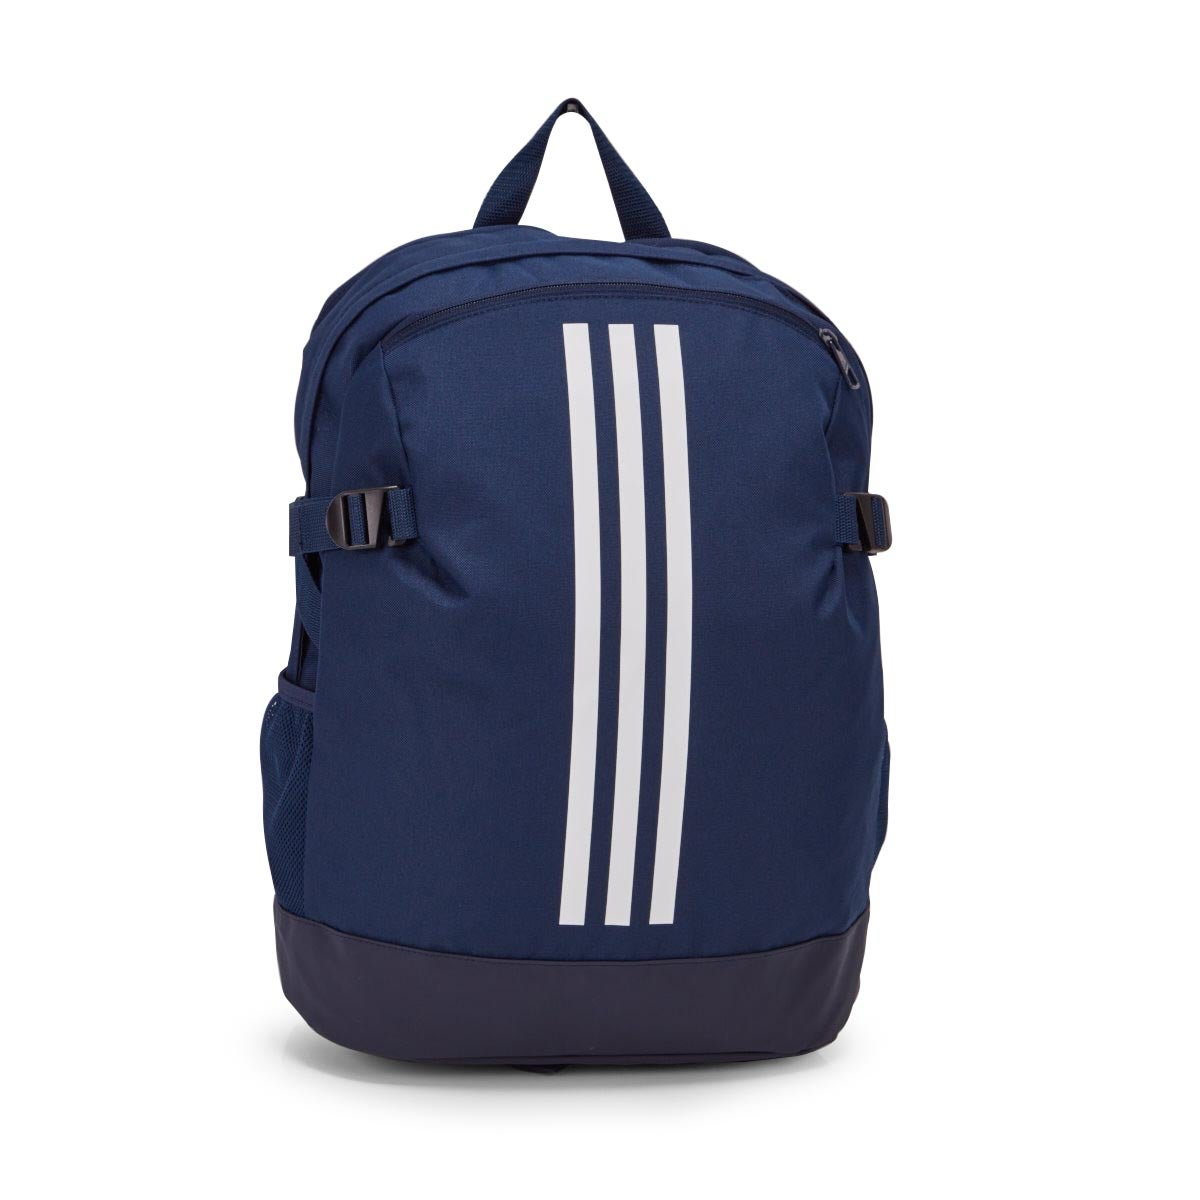 0d399f98df02e adidas Women s POWER IV M navy white backpack